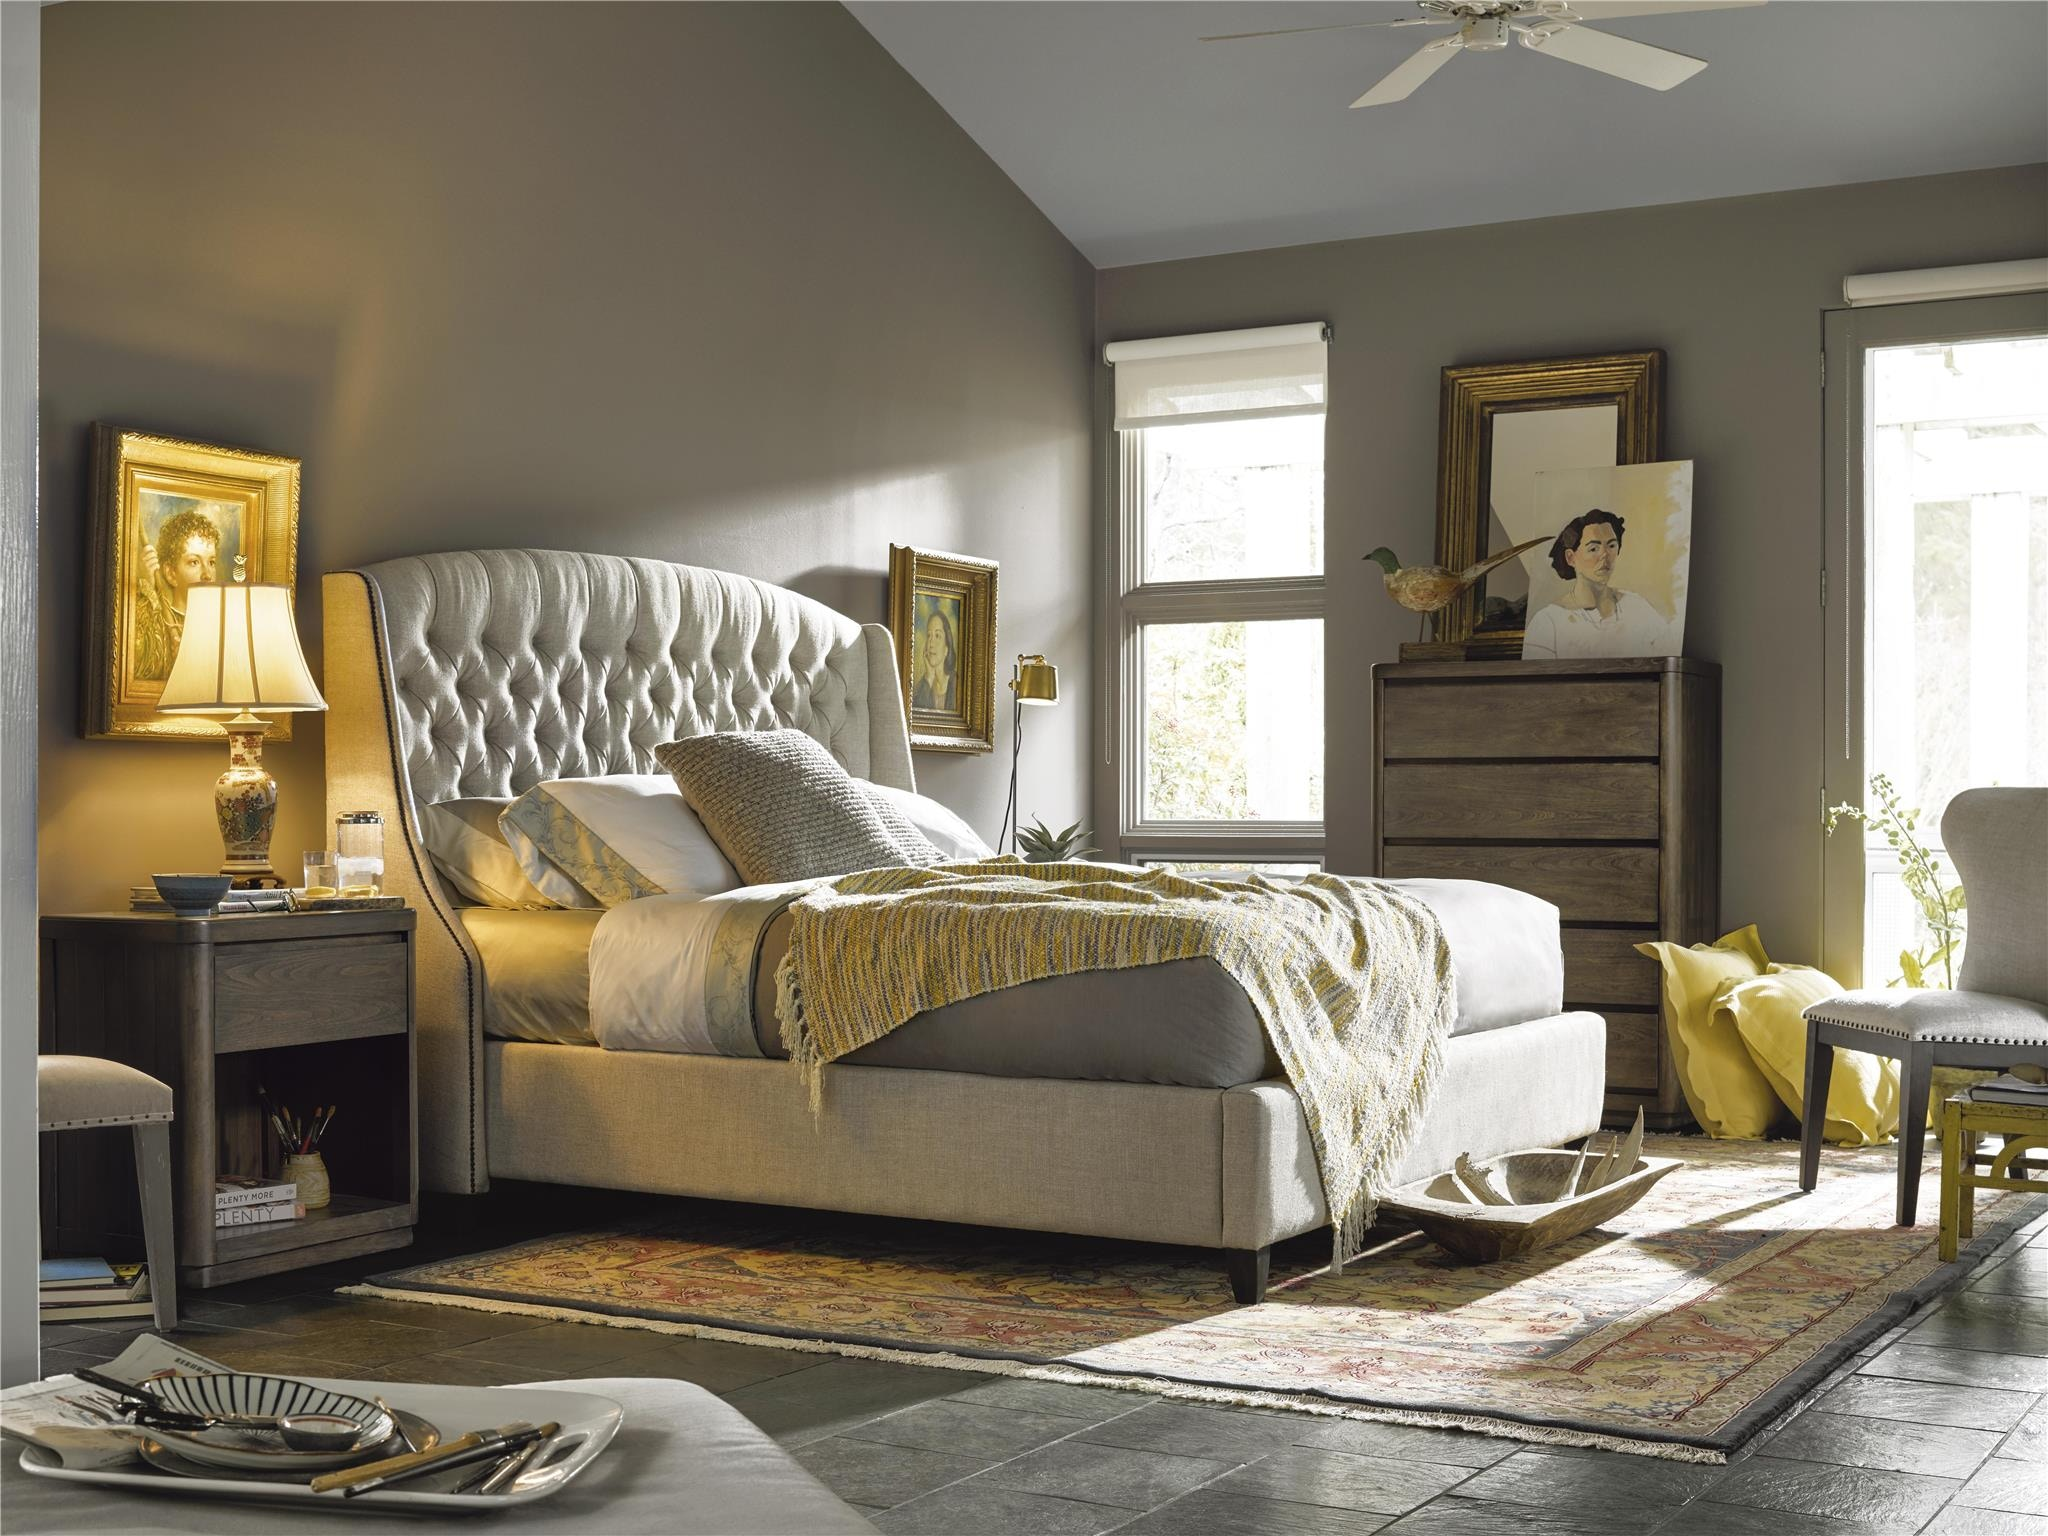 Universal Furniture Bedroom Halston Bed King (3 Pc) 552260B A At Turner  Furniture